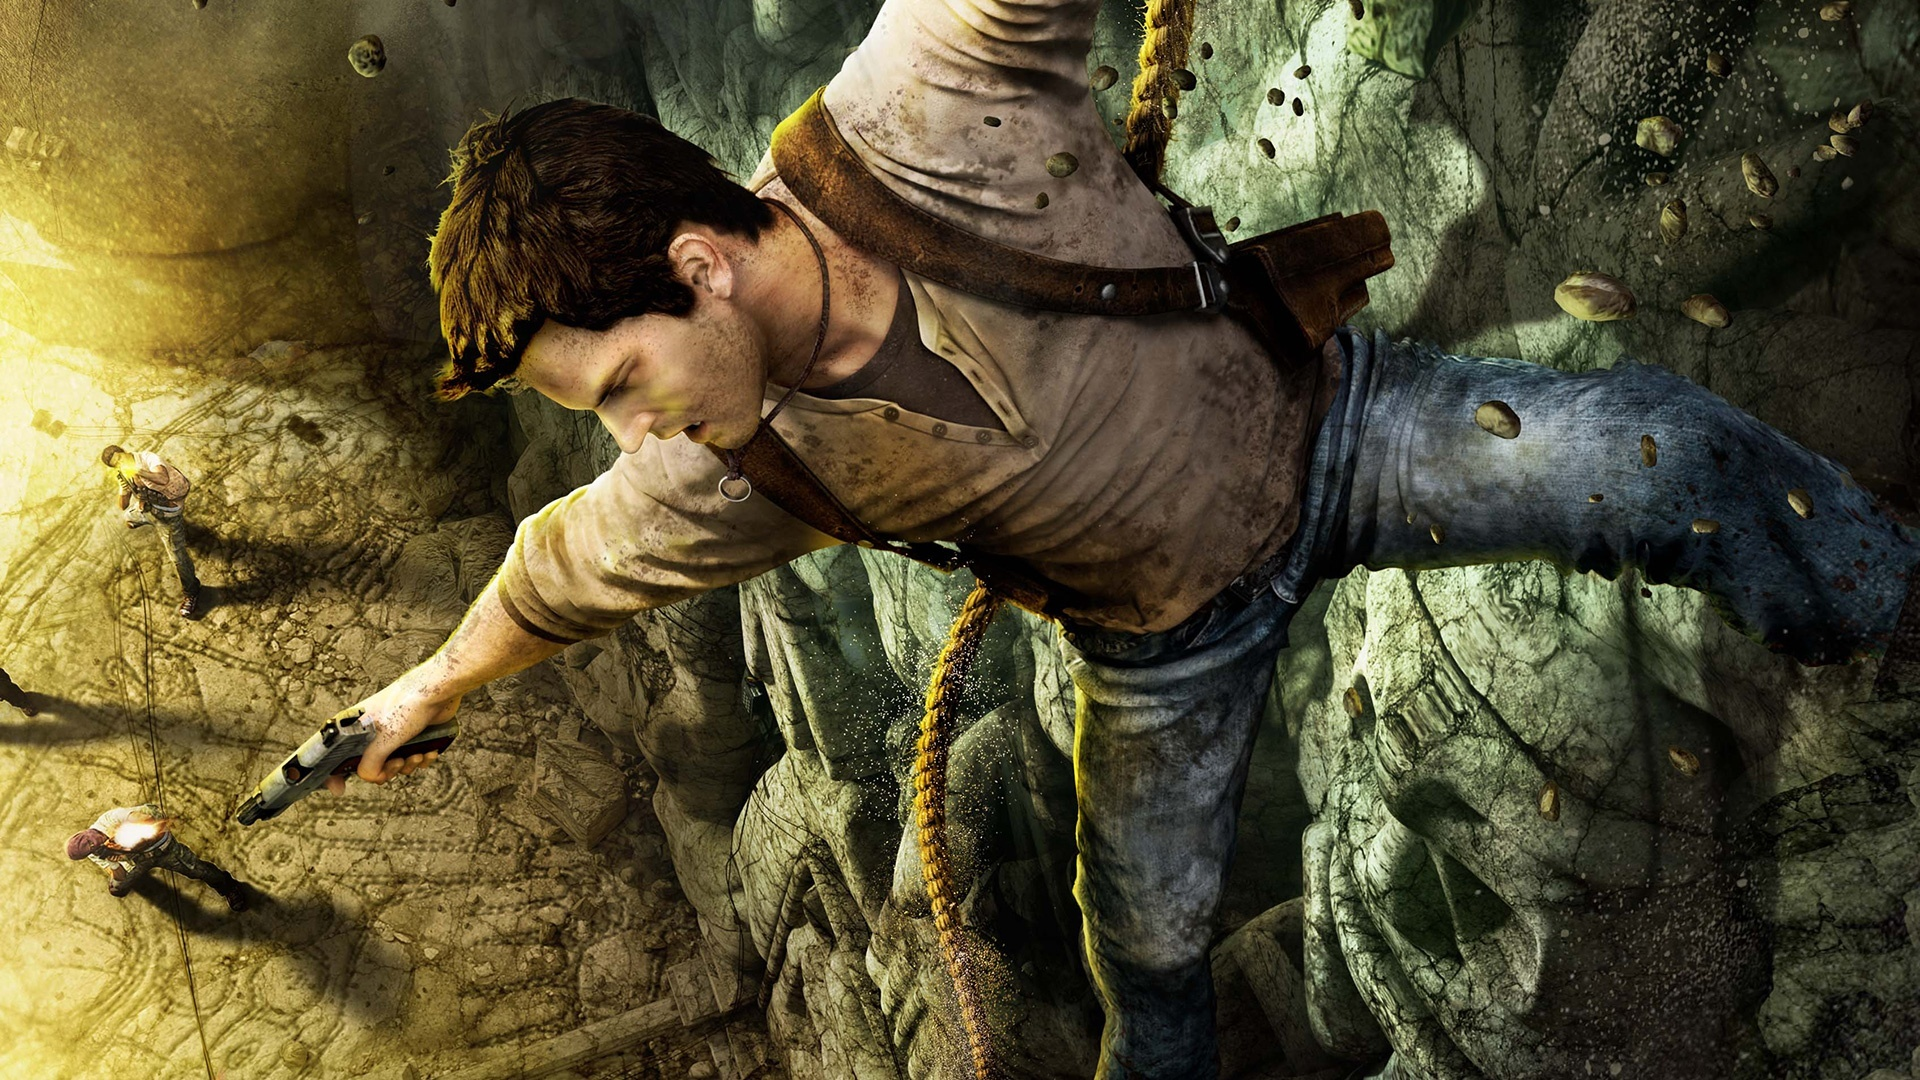 Pictures Of The Uncharted Film Gets A 2020 Release Date 1 1